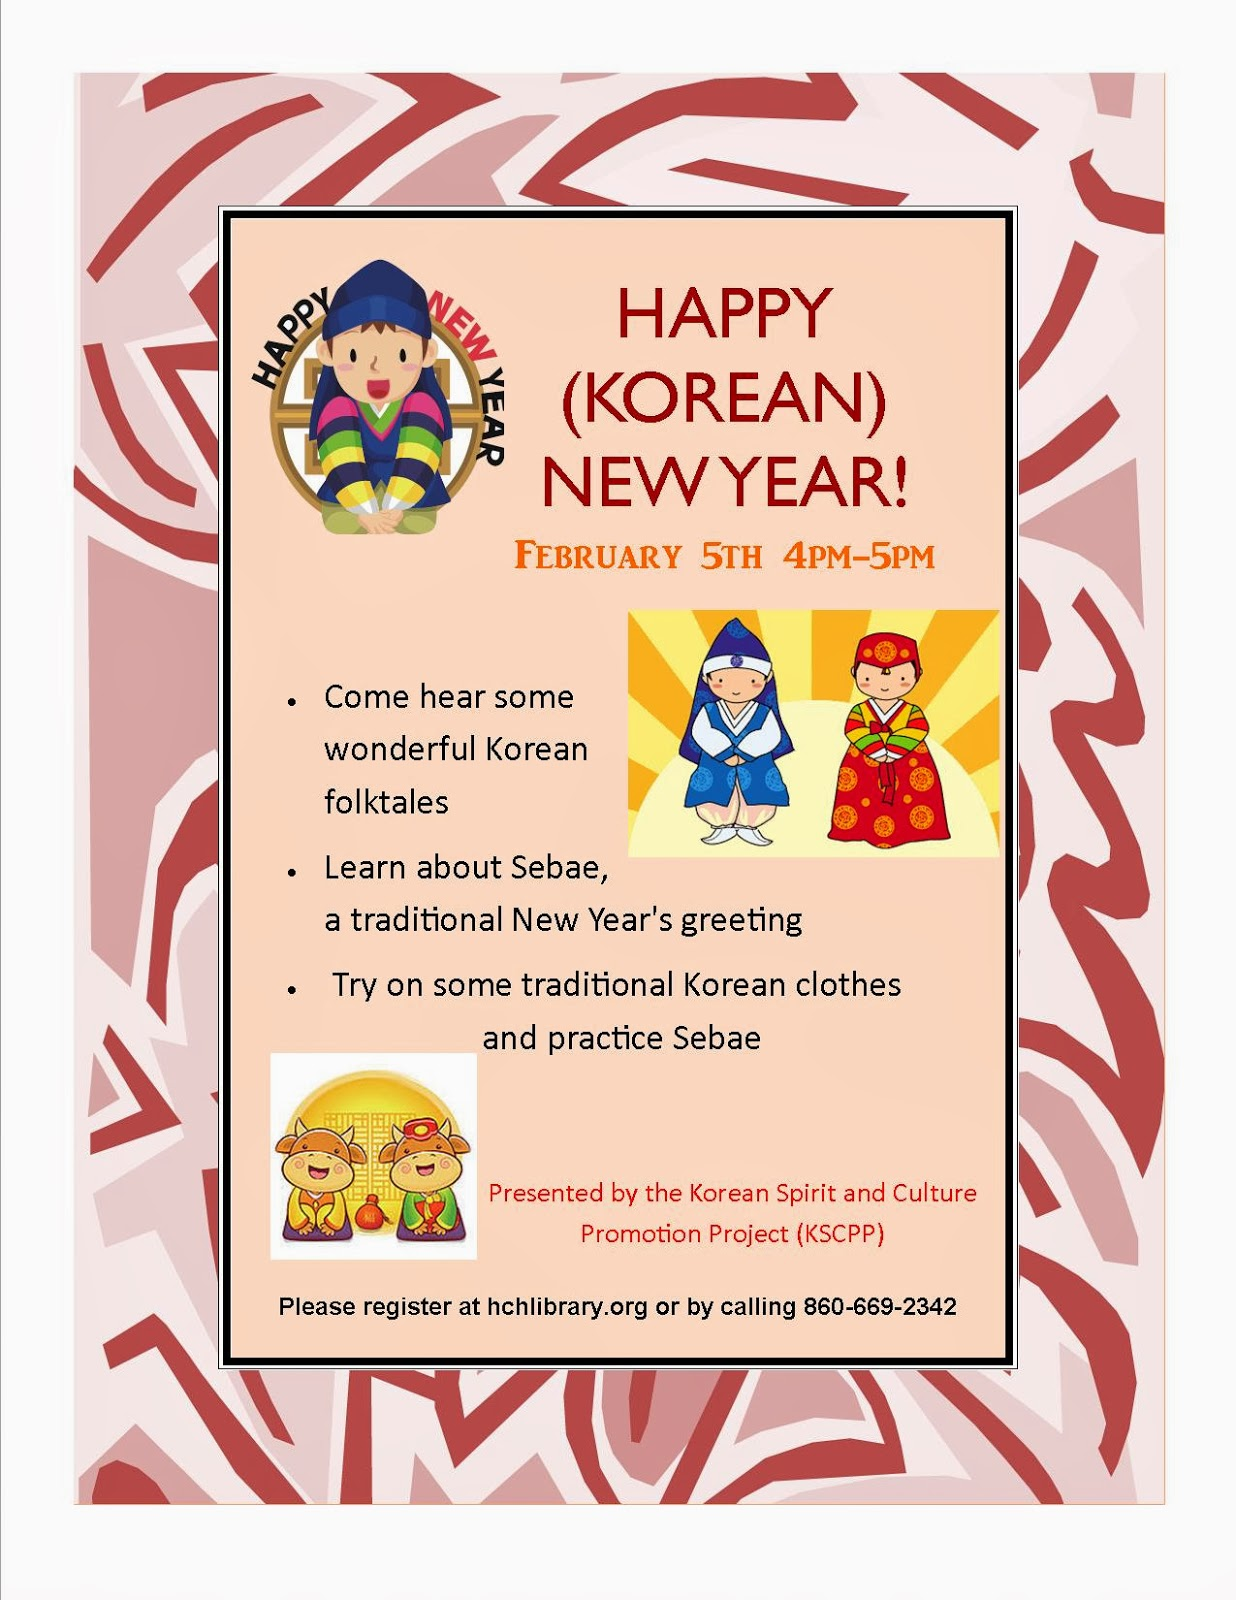 New korean greeting for chinese new year chinese new year korean greeting for feb year wishes 2015 new year korean korean 2015 19 m4hsunfo